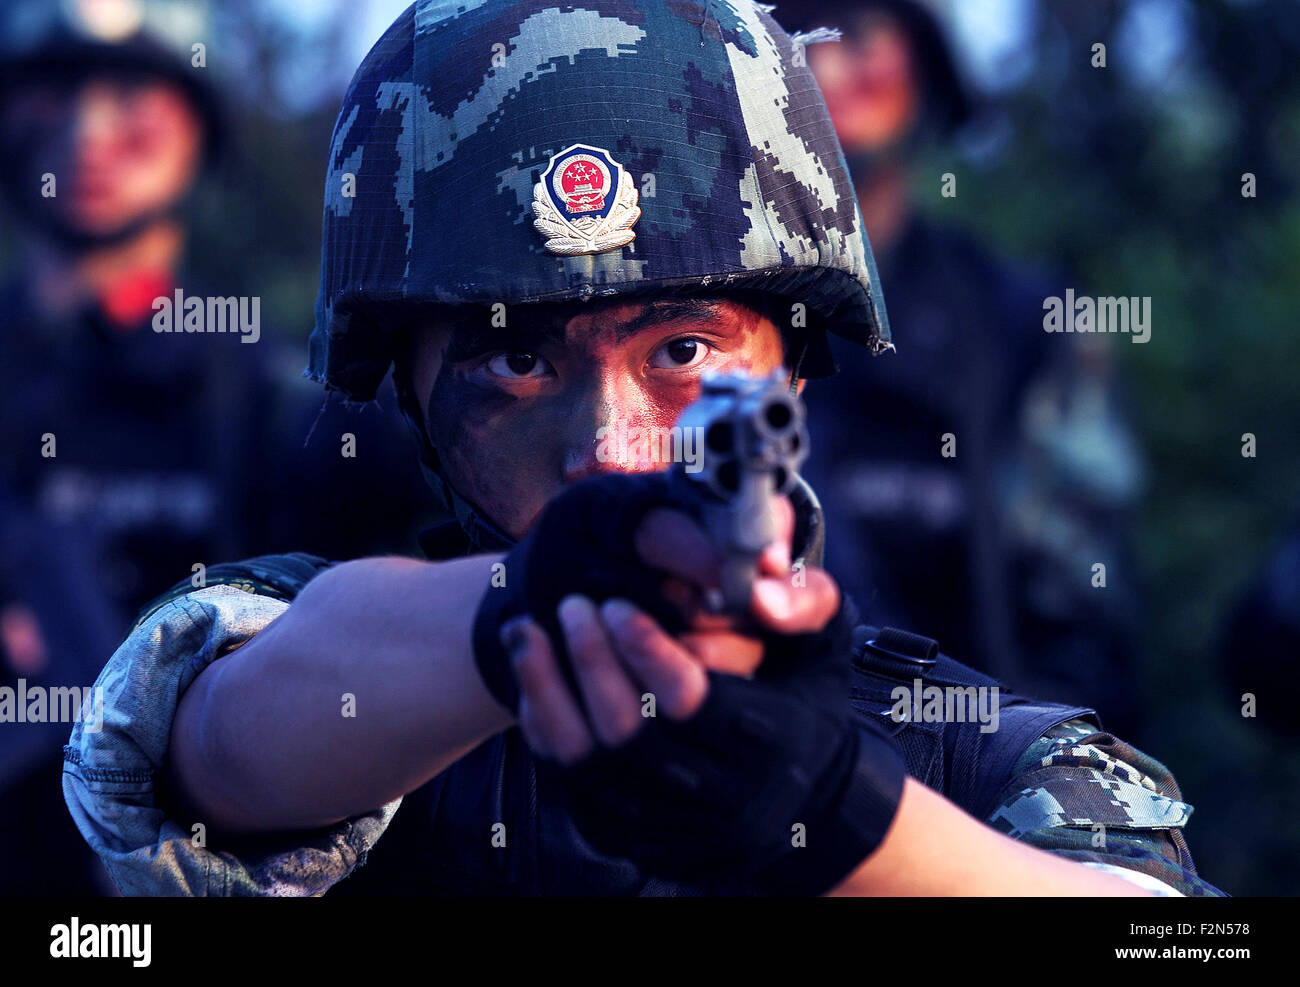 Shanghai, China. 21st Sep, 2015. Armed police sniper He Cheng practises rapid fire during a drill in Shanghai, east - Stock Image